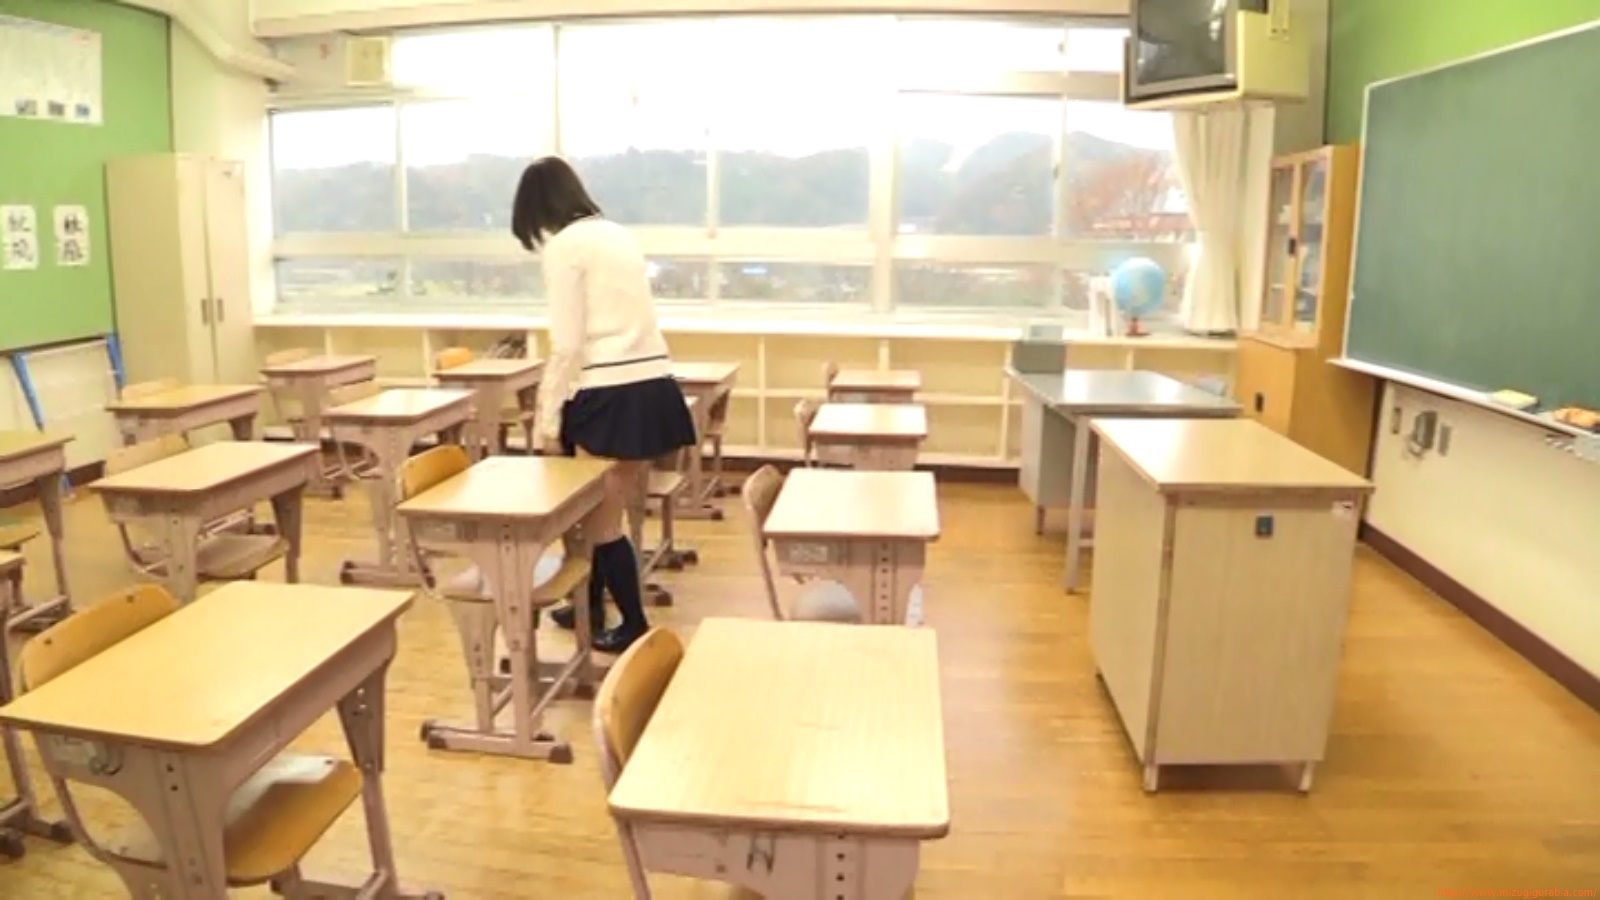 Two-person classroom033